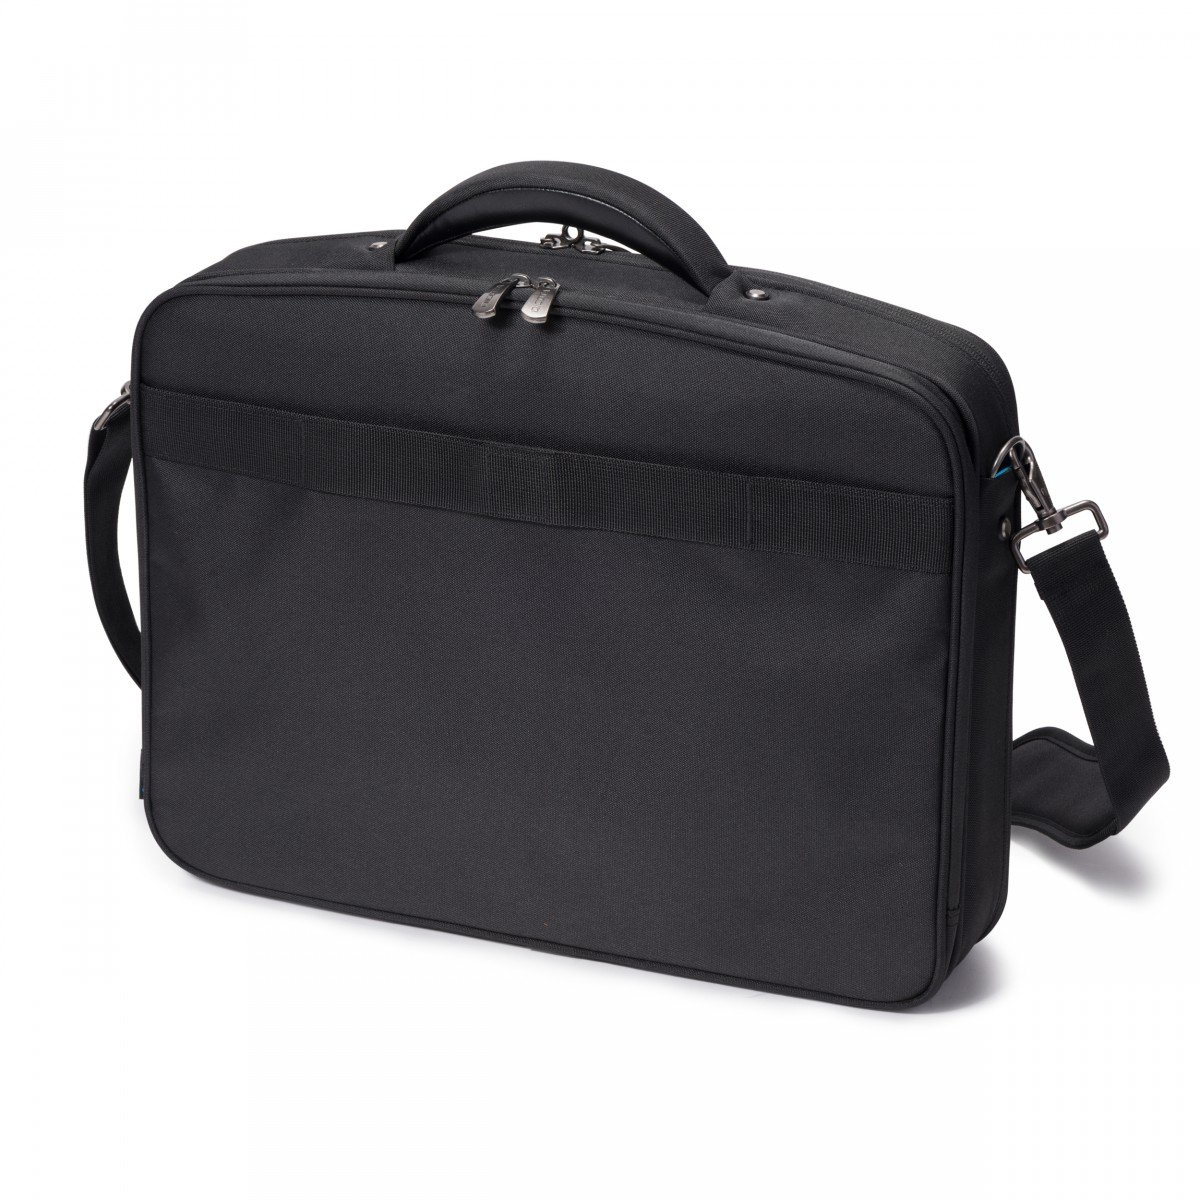 Dicota D30975 17.3 Briefcase Black notebook case - notebook cases (43.9 cm (17.3), Briefcase, B